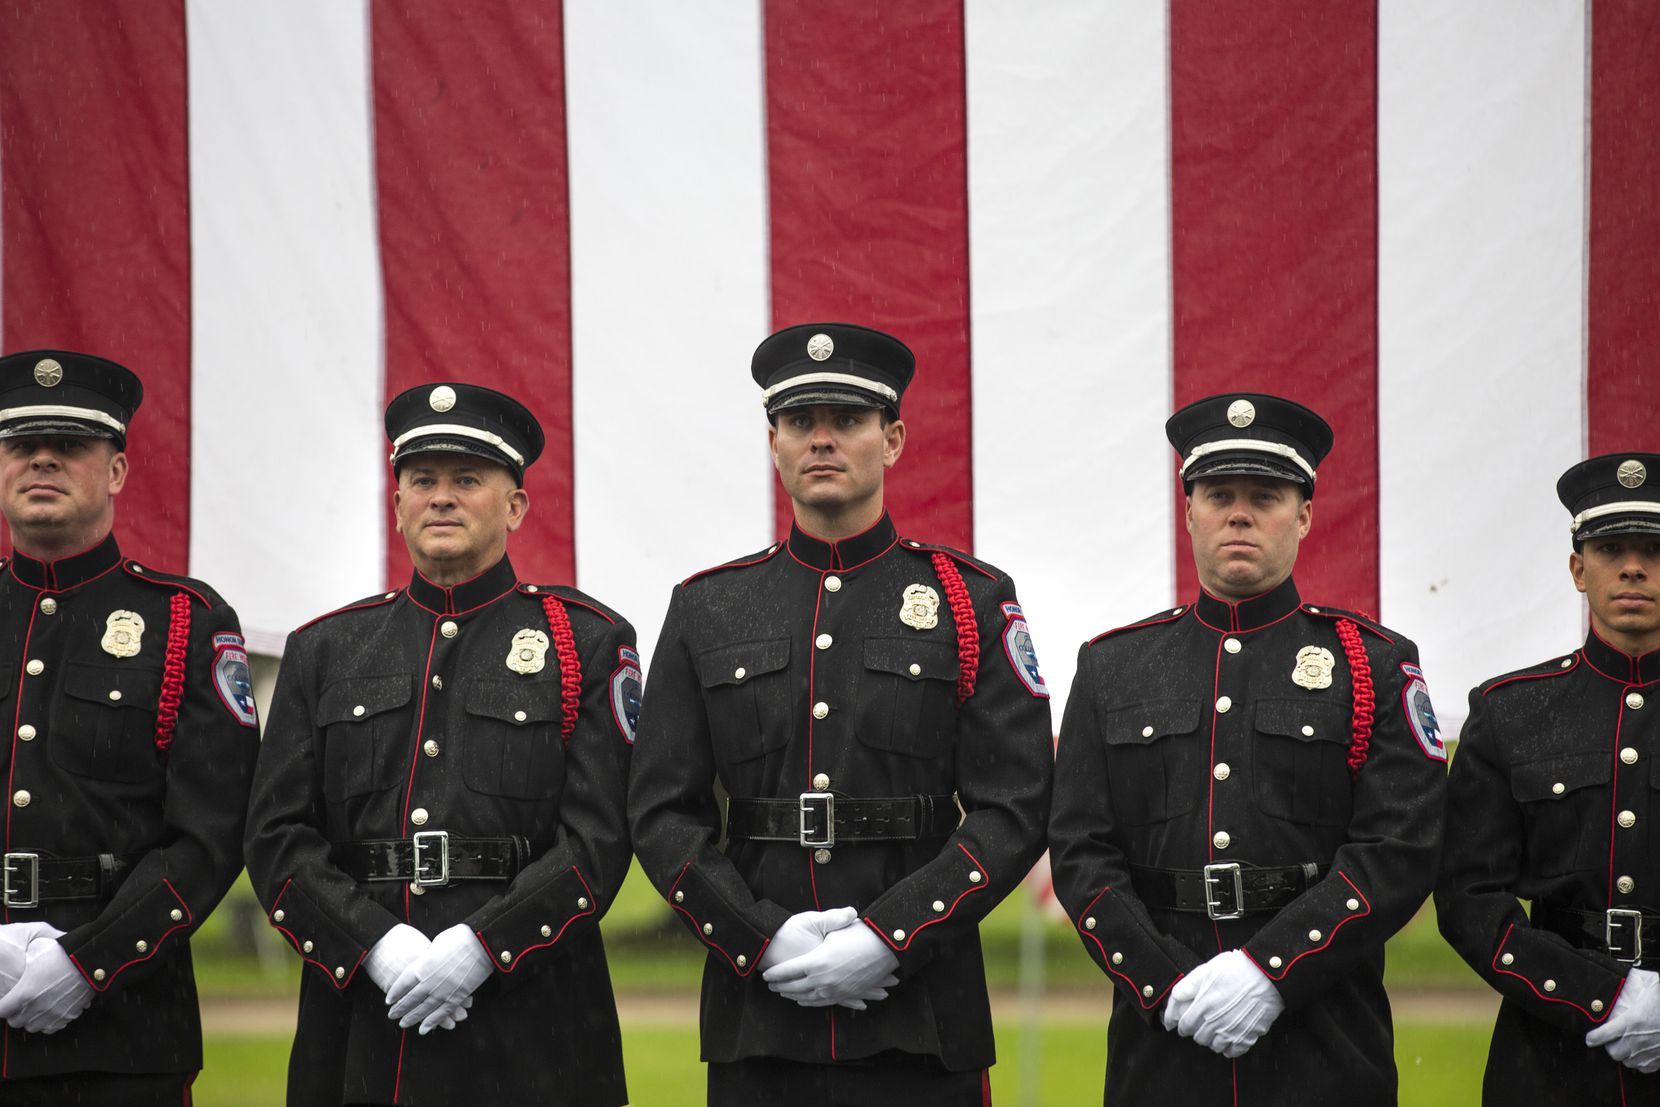 Matt Olson (from left), William Savage, Jason Fisch, William Hutton and Martin Mendoza of the Colleyville Fire Department Honor Guard stood next to a large U.S. flag after their participation in a virtual Memorial Day remembrance ceremony at Bluebonnet Hills Funeral Home in Colleyville.